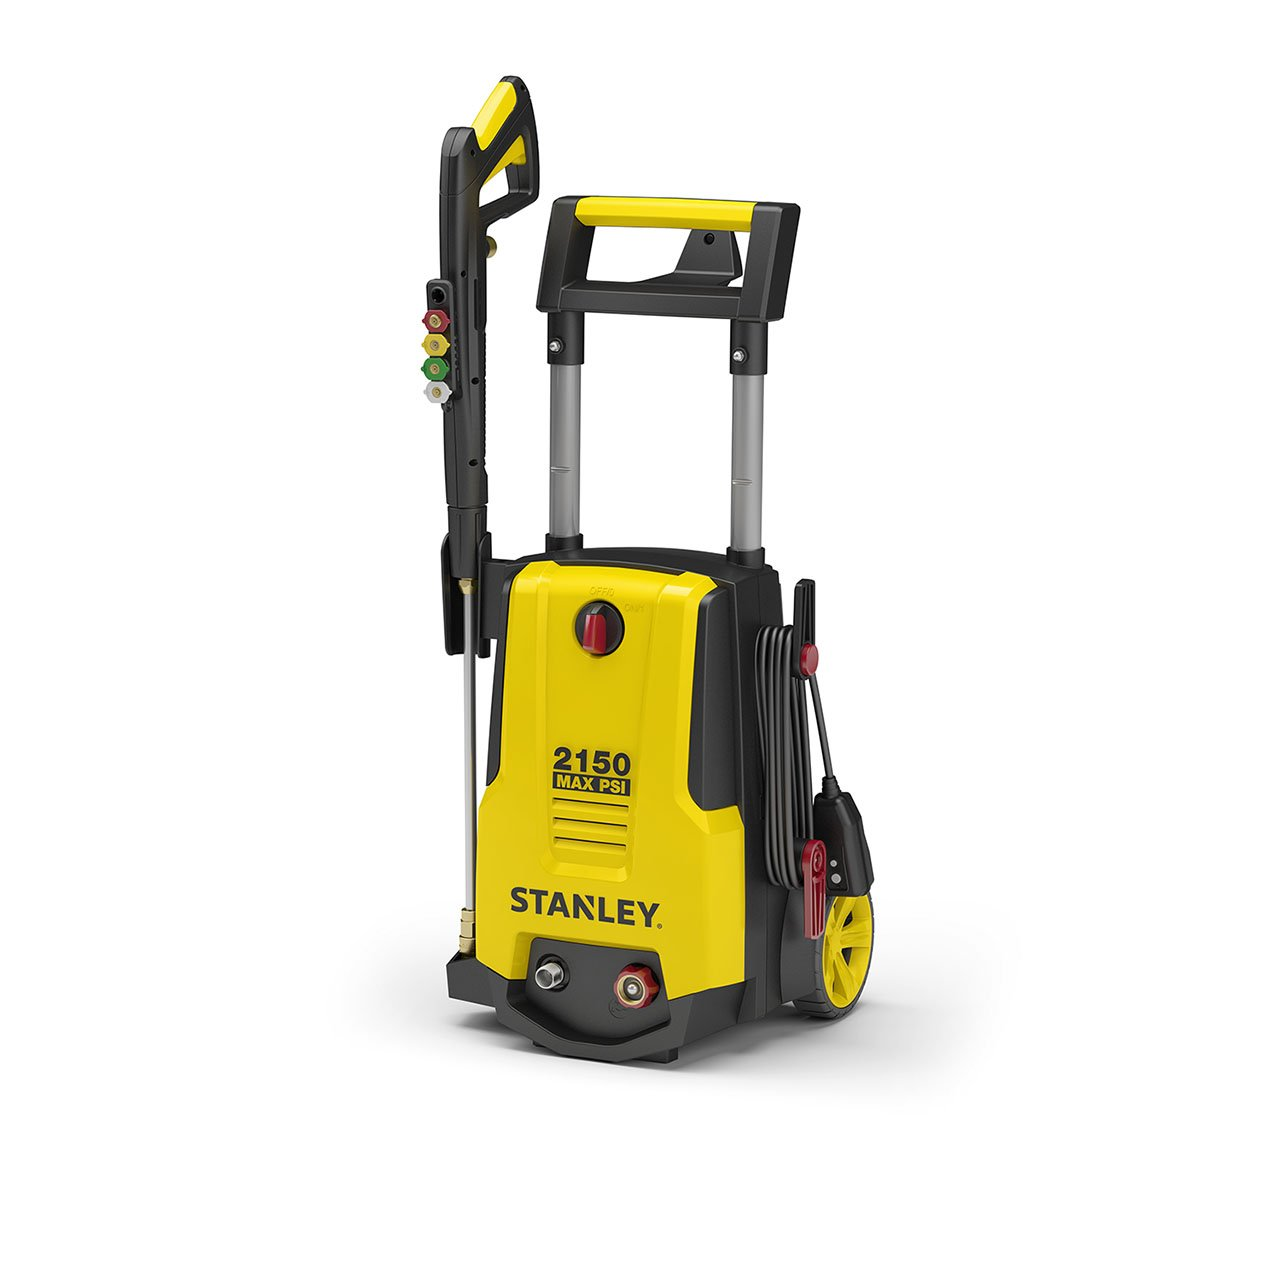 Stanley SHP2150 2150 PSI Powerful Pressure Washer by Stanley